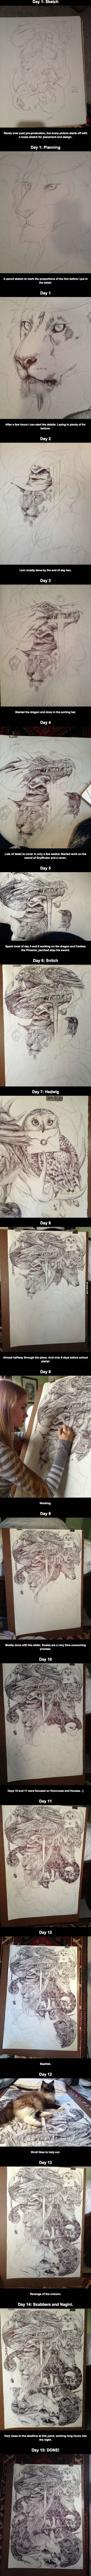 A massive Harry Potter themed drawing. This is unbelievable!